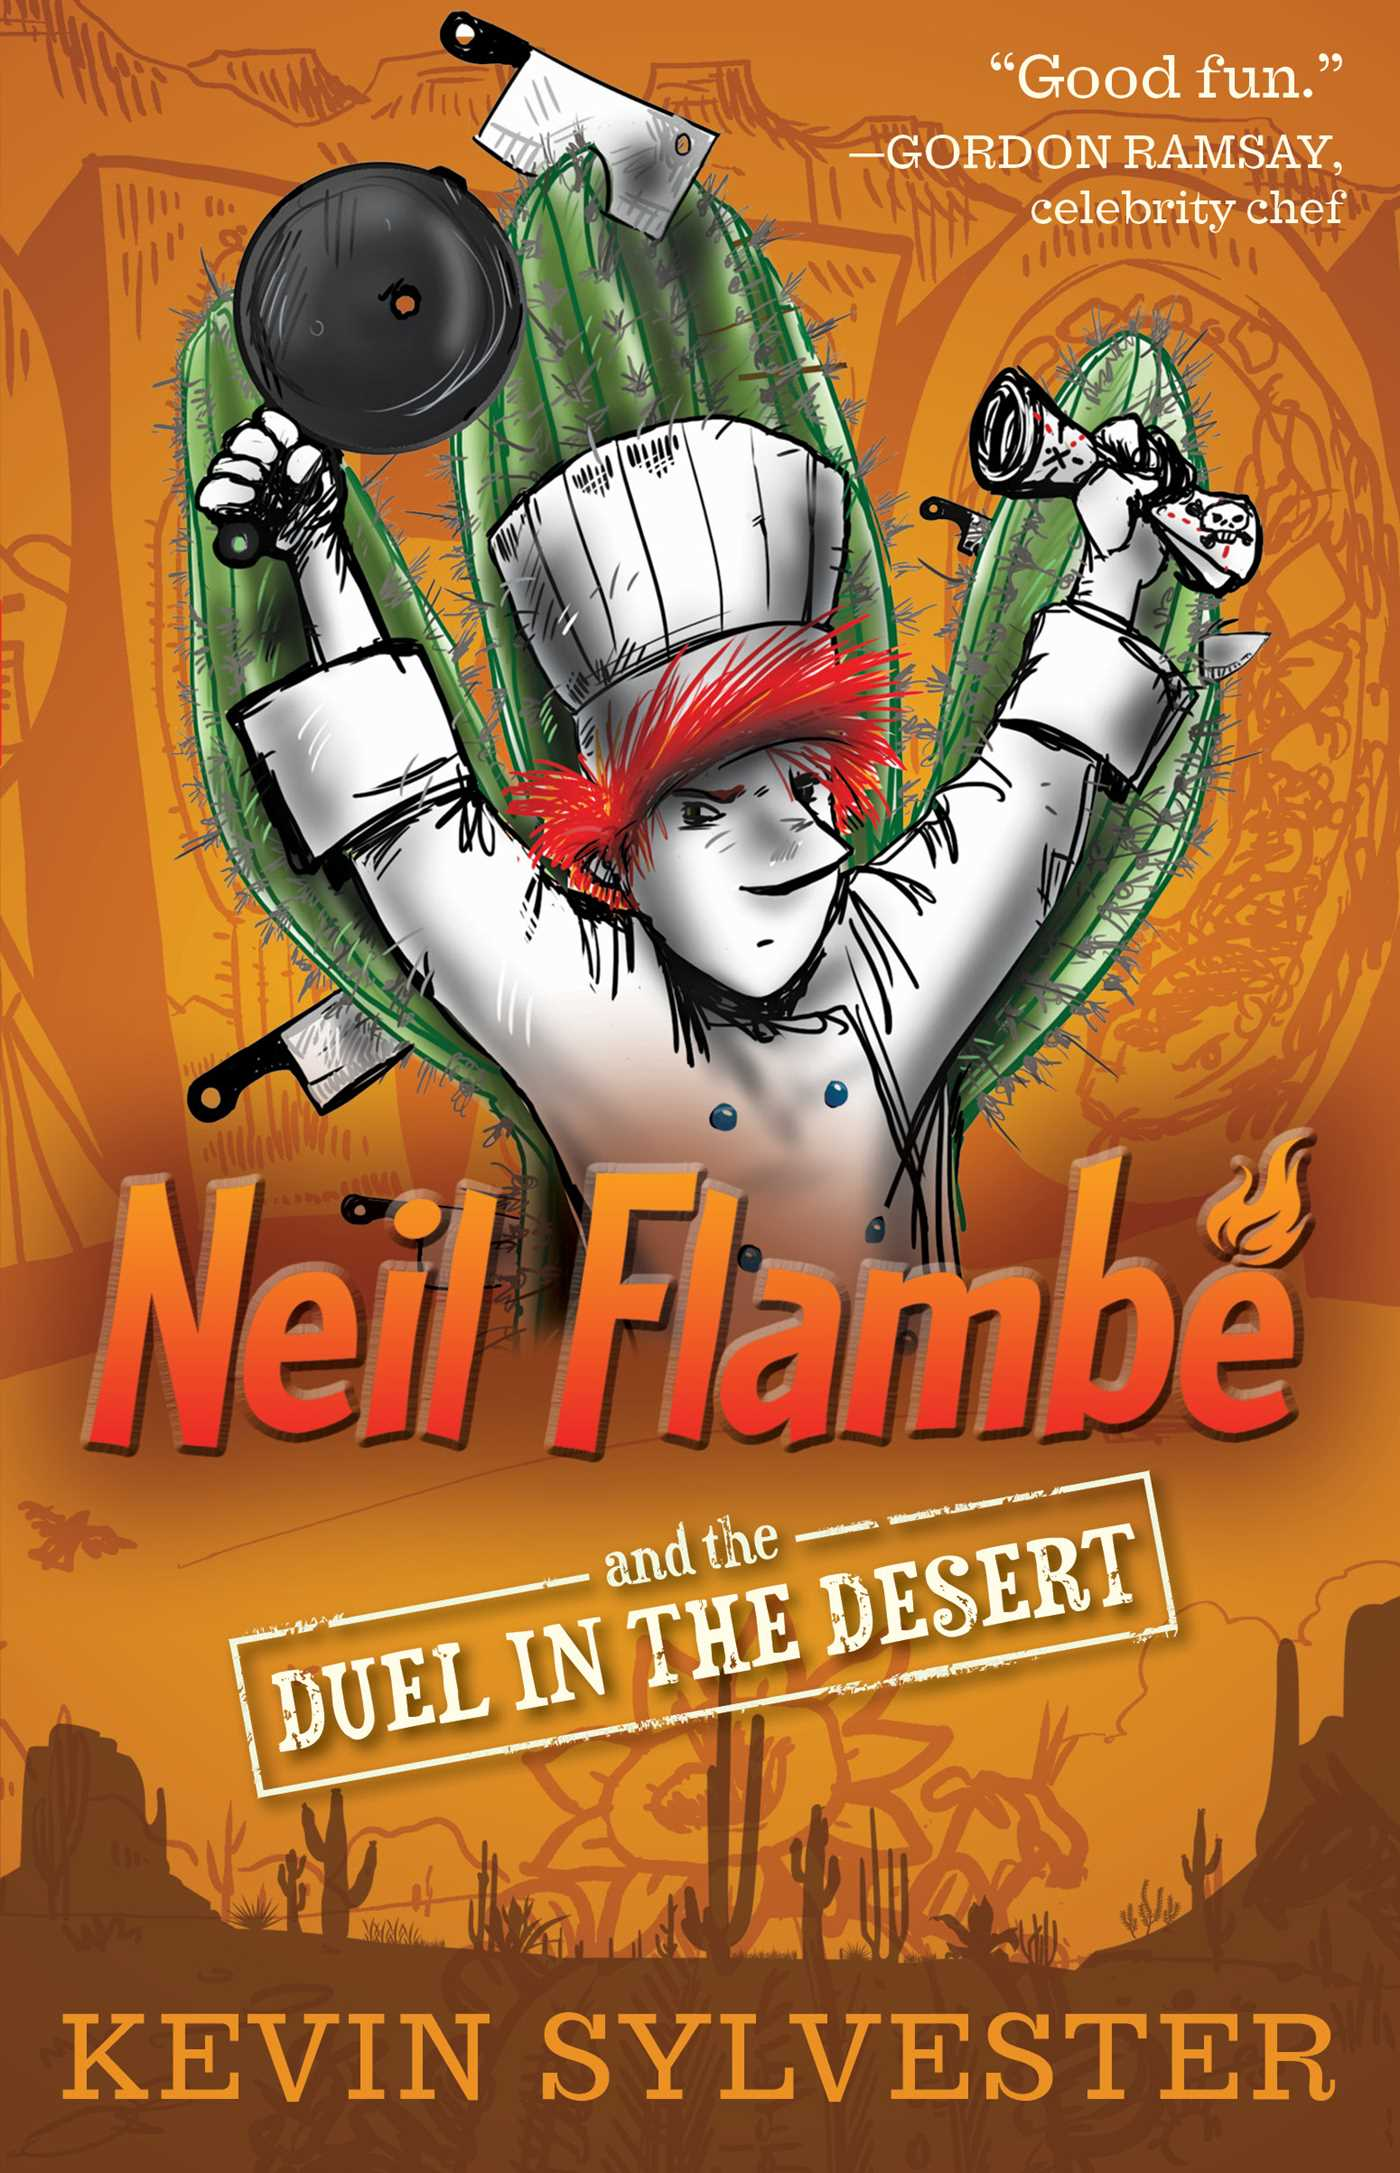 Neil flambe and the duel in the desert 9781481410410 hr